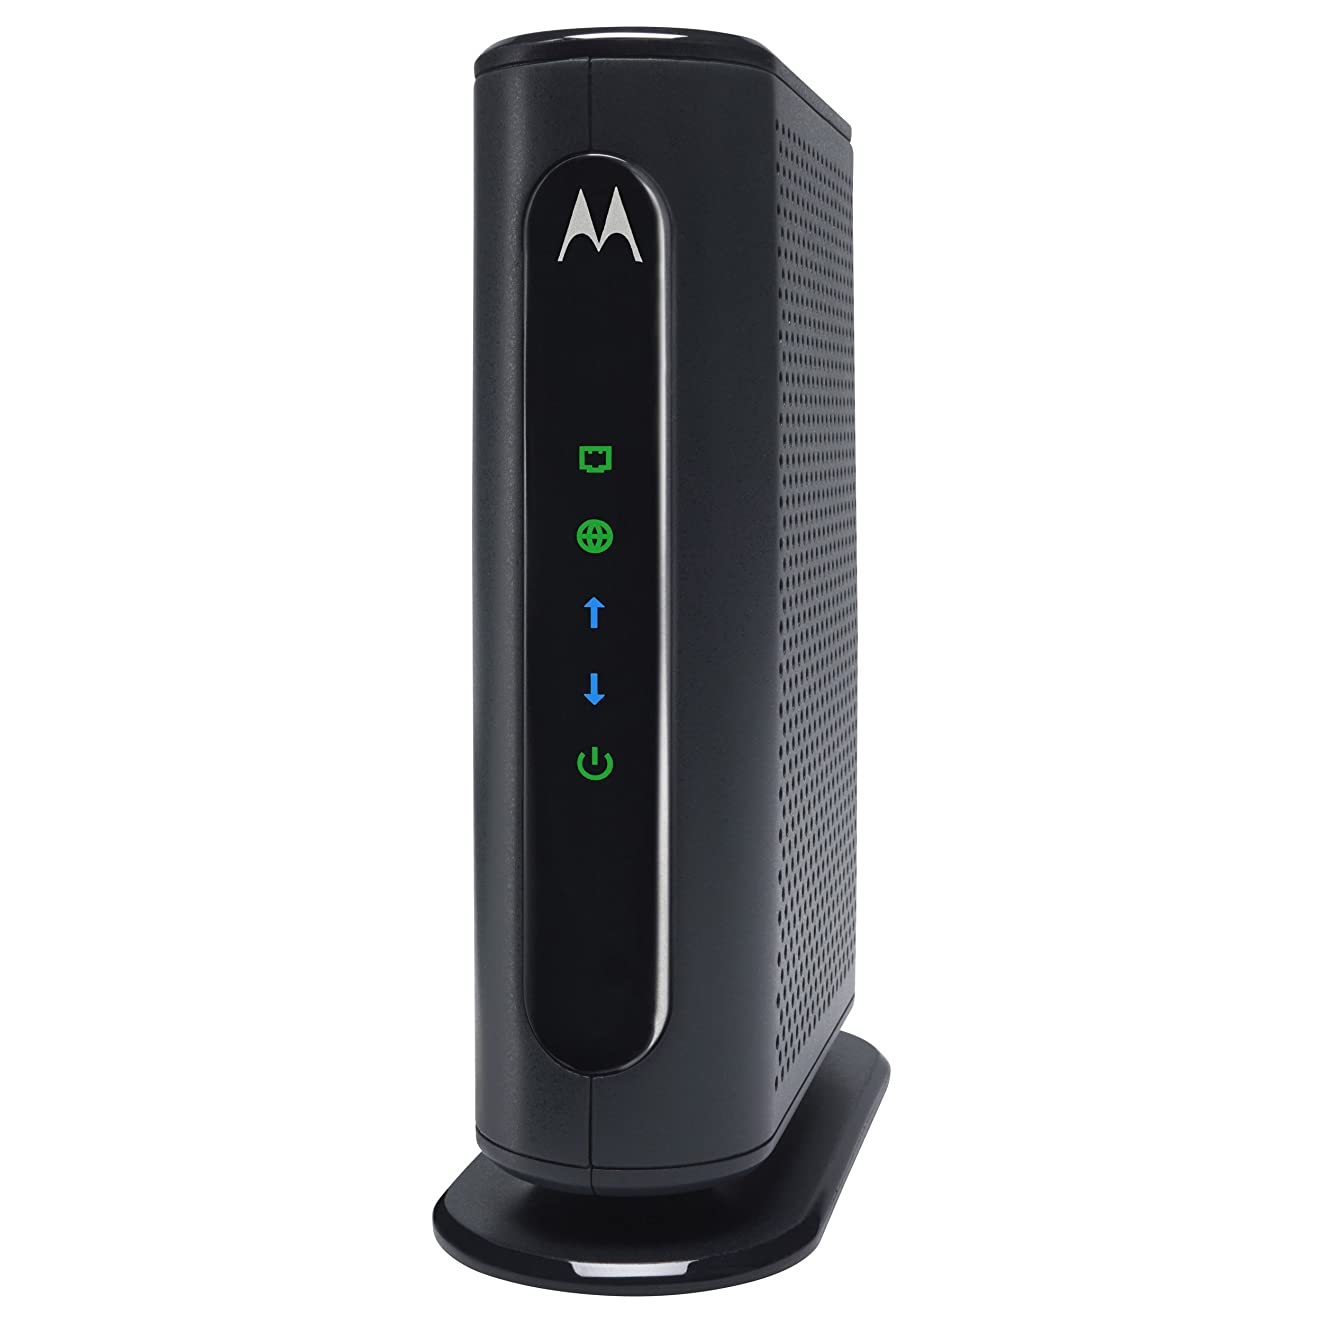 MOTOROLA 8x4 Cable Modem, Model MB7220, 343 Mbps DOCSIS 3.0, Certified by Comcast XFINITY, Time Warner Cable, Cox, BrightHouse, and More (No Wireless)